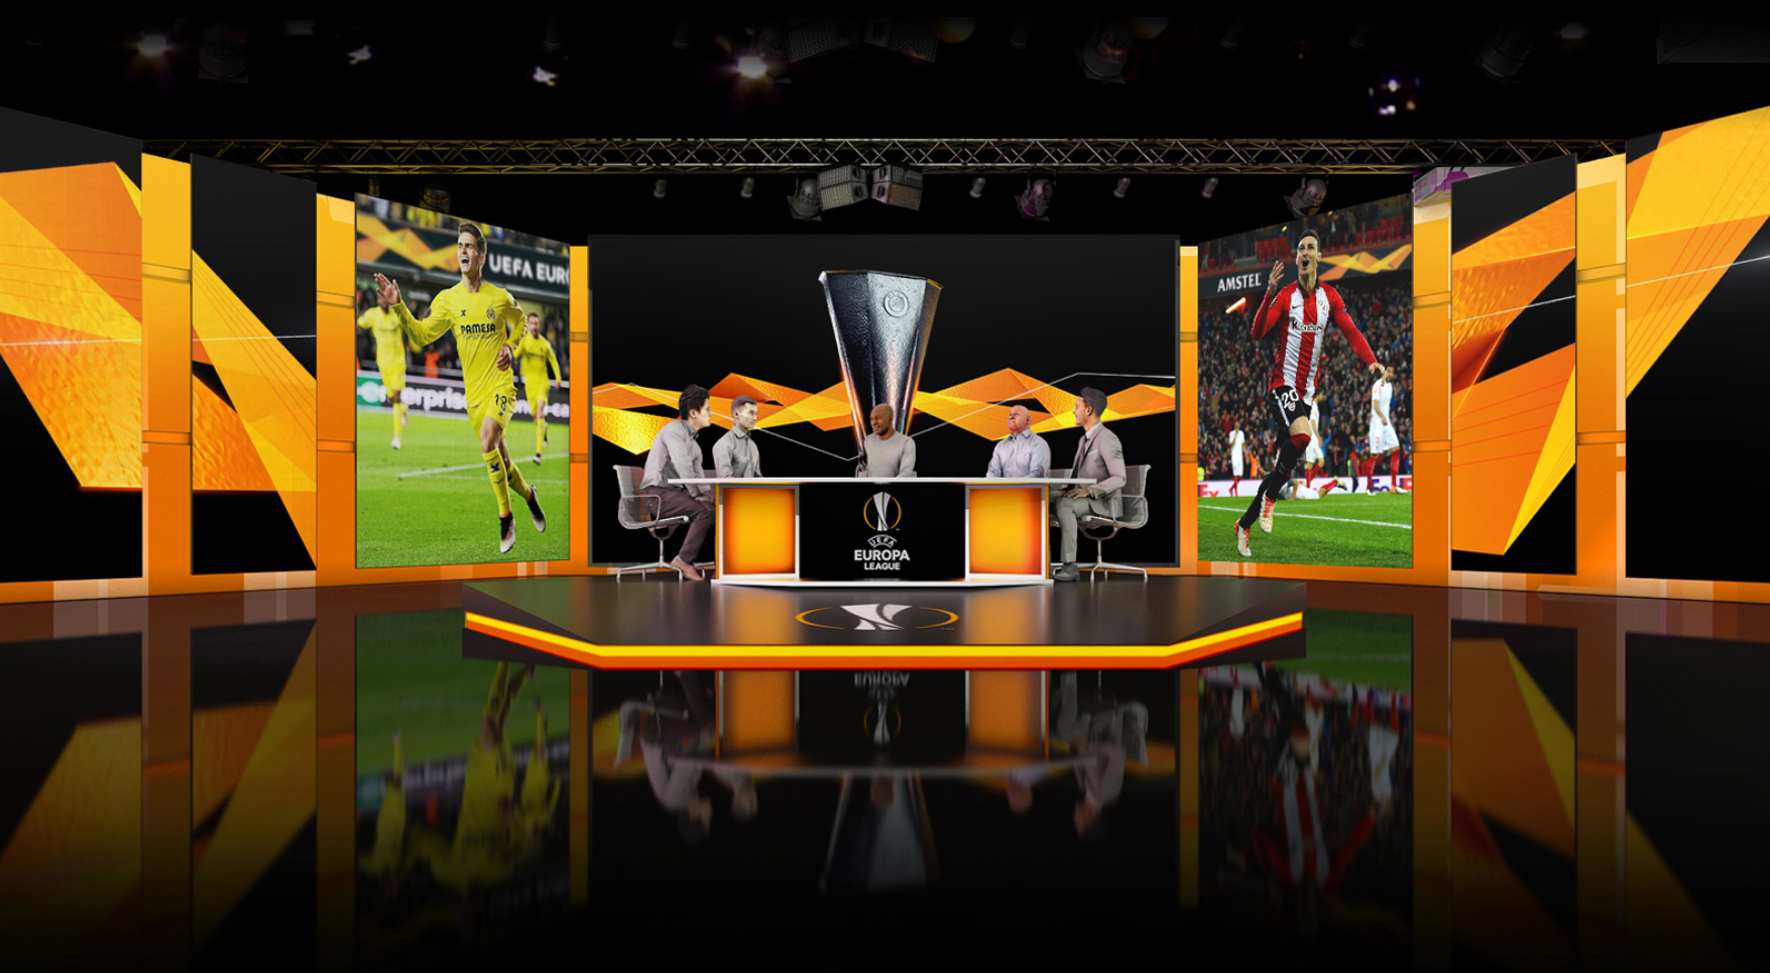 UEFA Europa League 2018-21 work 2